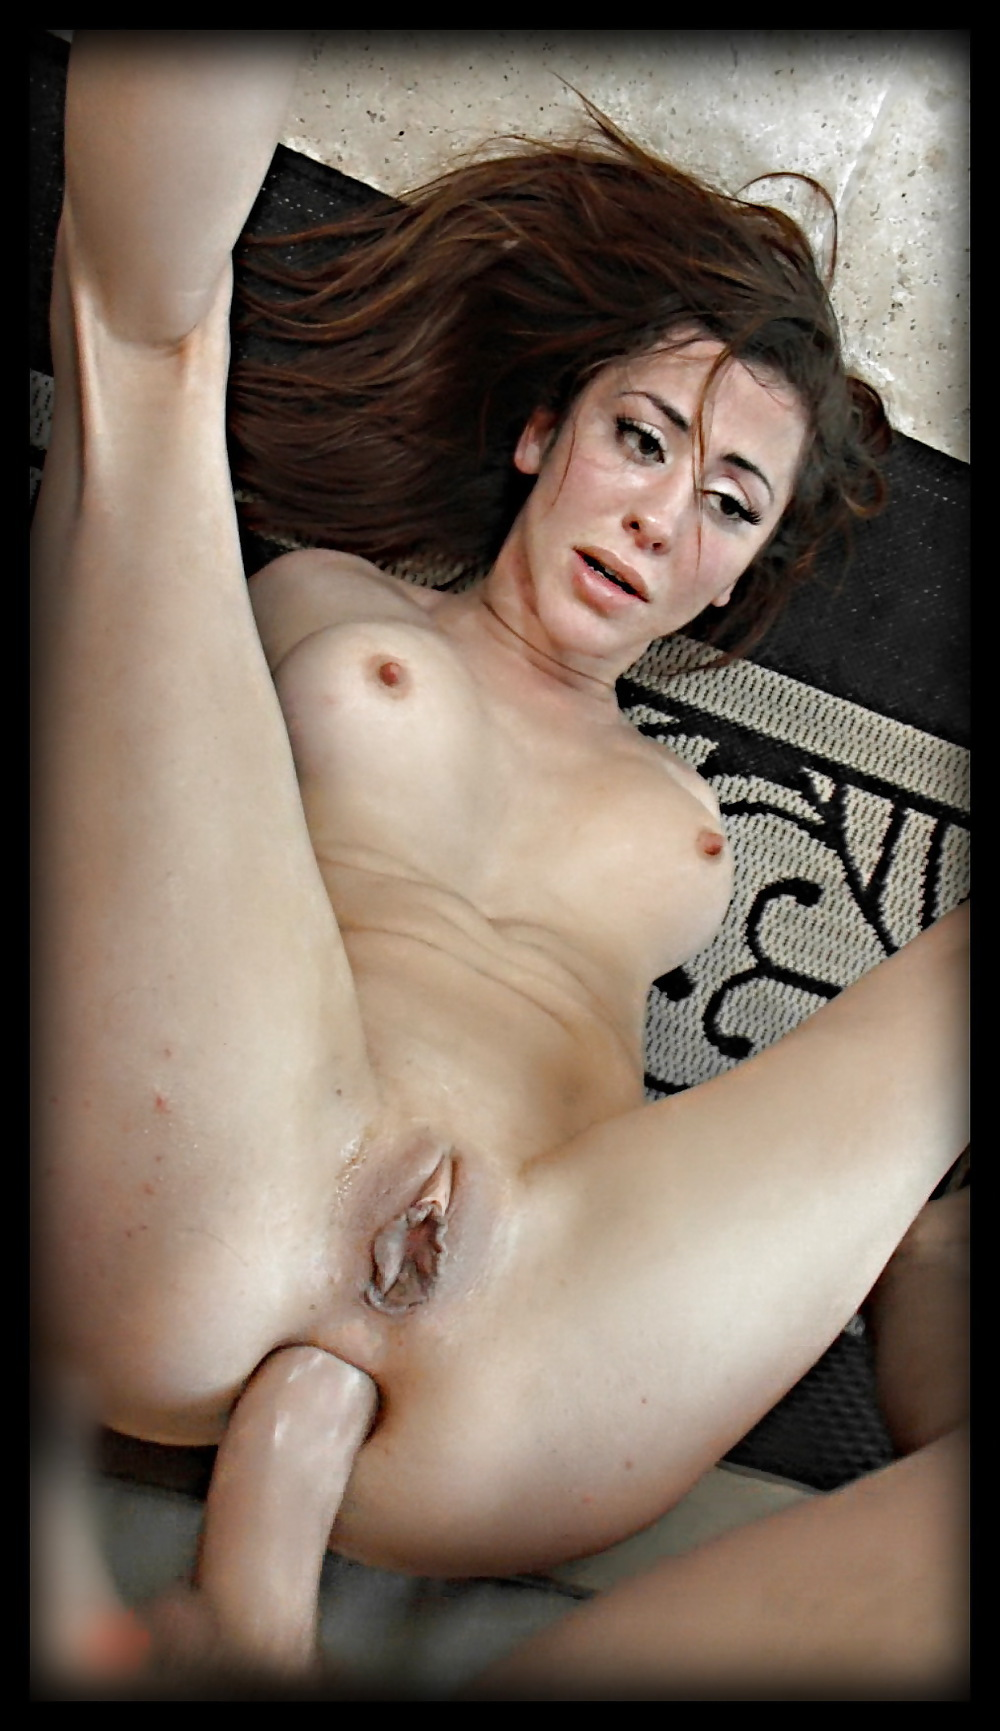 Princess donna submits to double anal and even triple penetration